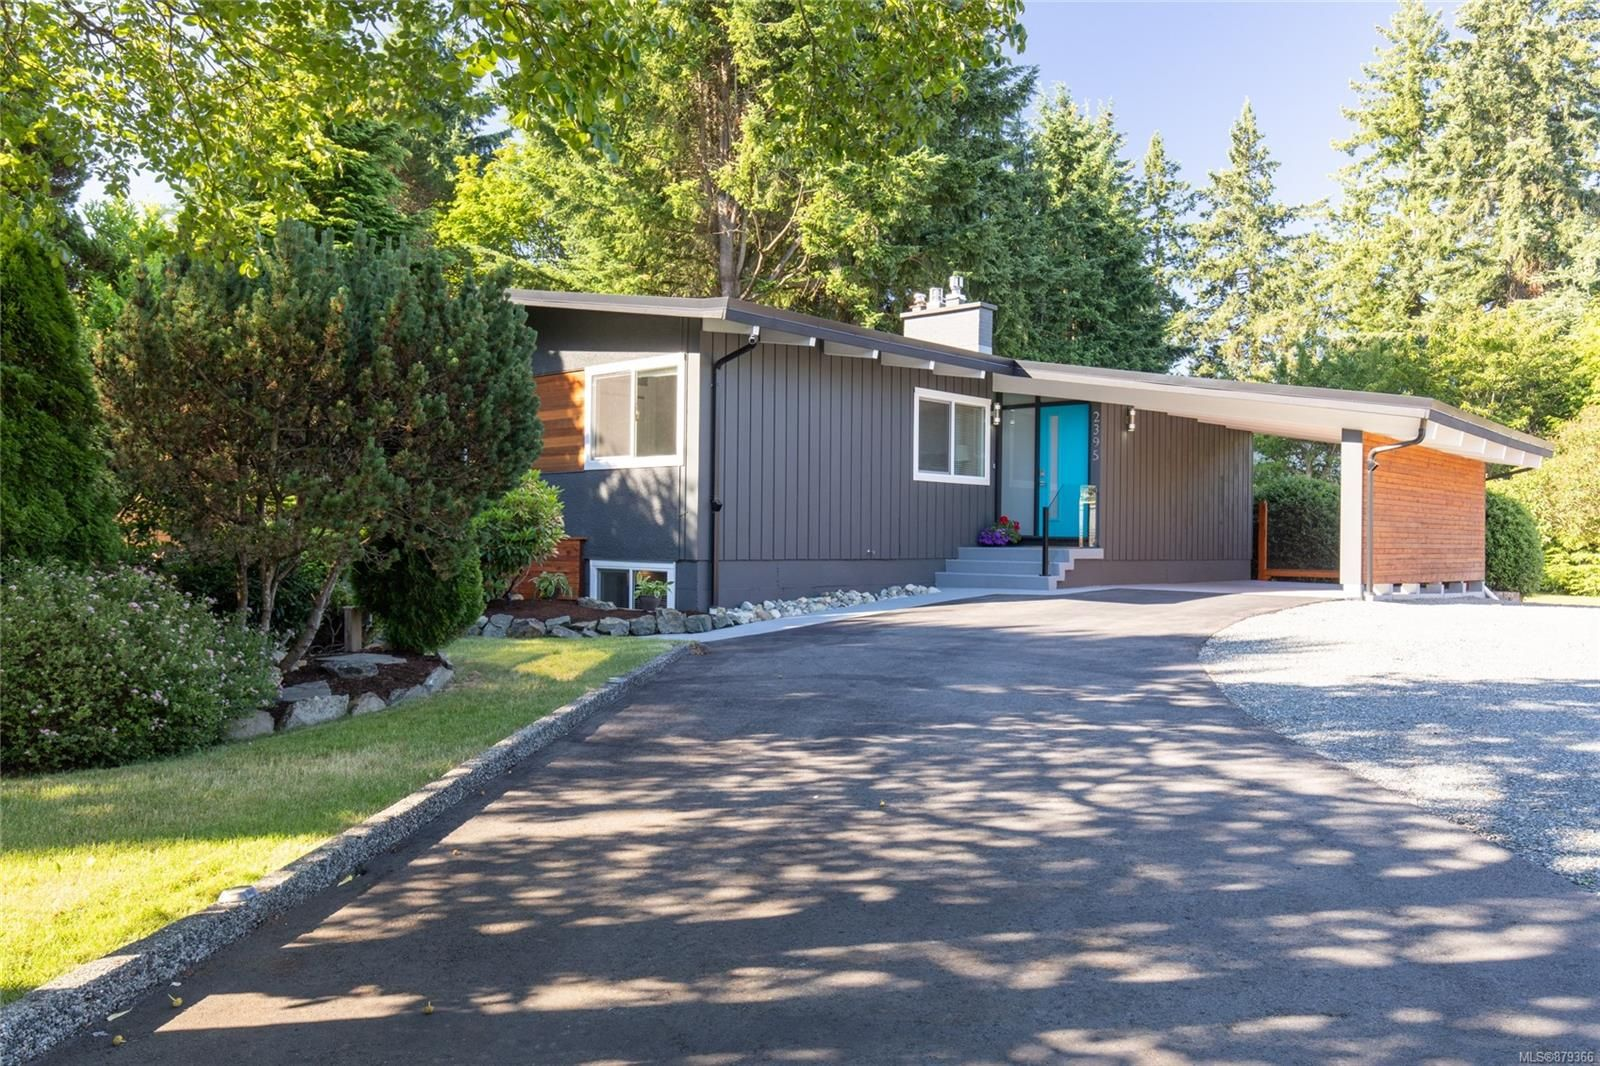 Main Photo: 2395 Marlborough Dr in : Na Departure Bay House for sale (Nanaimo)  : MLS®# 879366